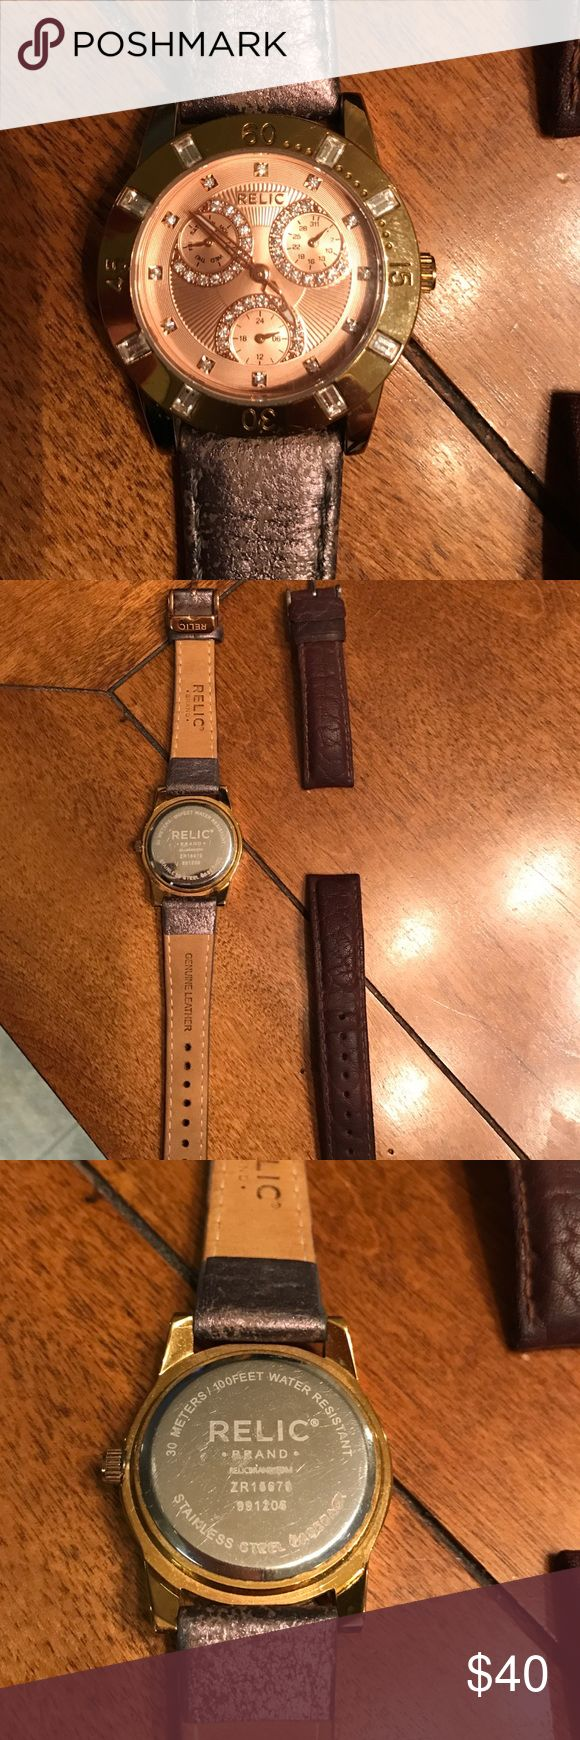 Relic watch Rose gold Relic watch with metallic leather bronze/gray band. The face is gently used and the original band (the one shown on watch) is brand new and was switched to the brown band when purchased. The used brown band is included 🤗 the watch band is 18mm. Battery is working Relic Accessories Watches